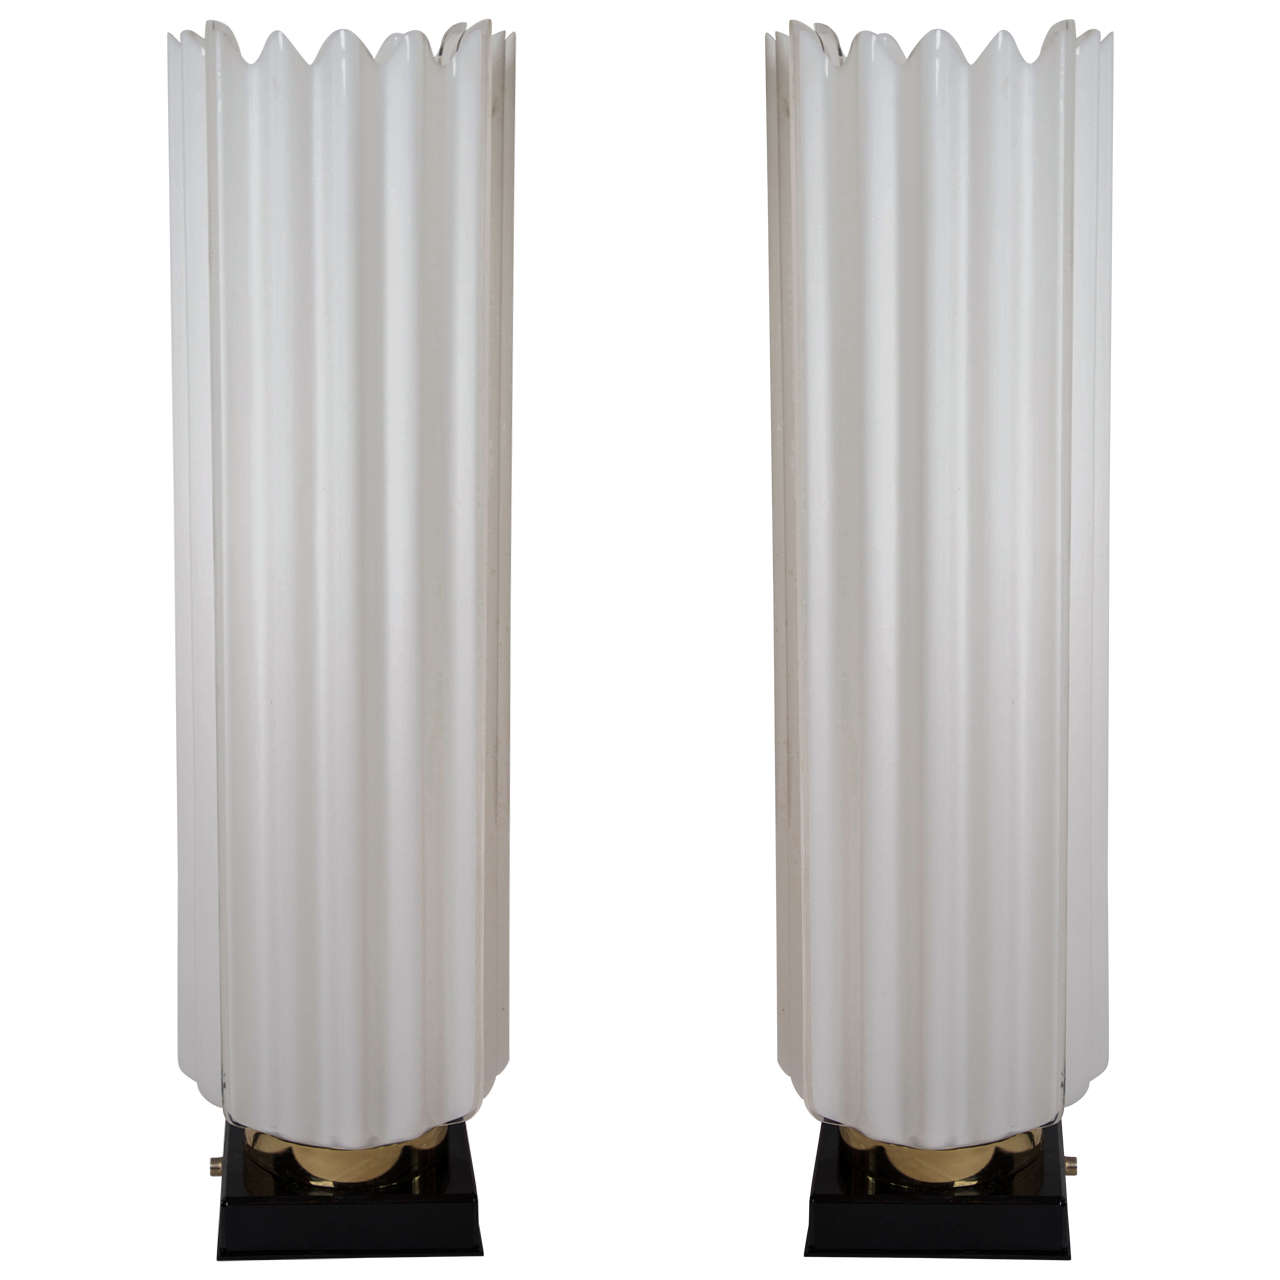 Pair of 1970s Fluted Standard Lamps by Rougier